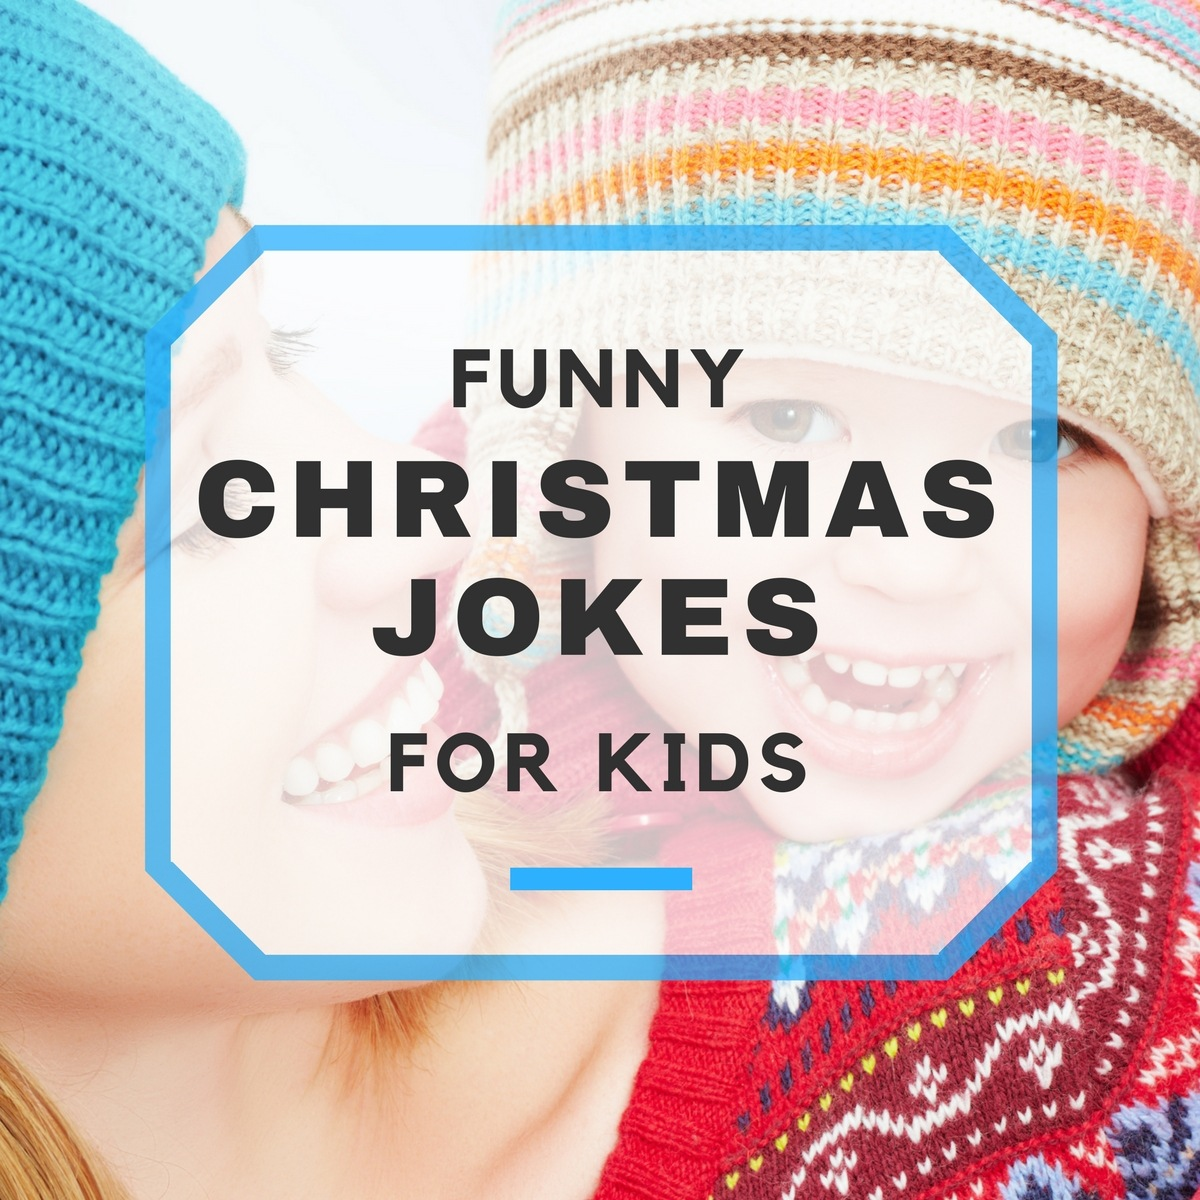 Corny Christmas Jokes.Funny Christmas Jokes For Kids